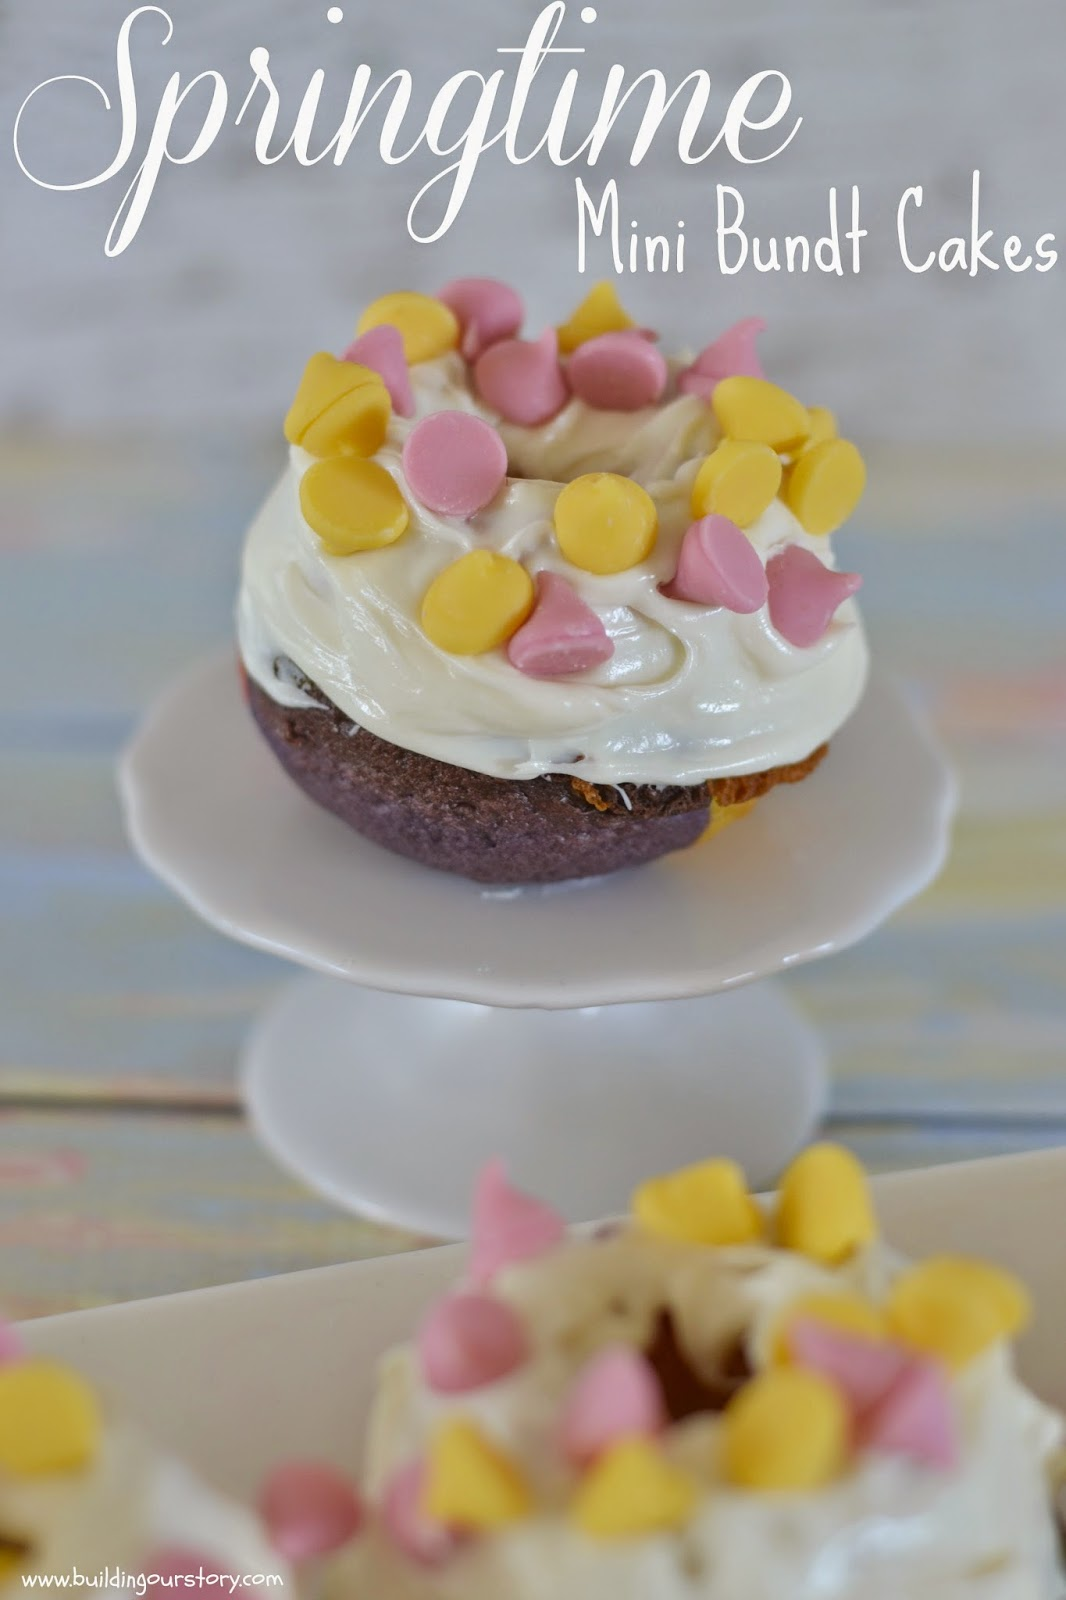 Colorful Mini Bundt Cakes #Recipe.  Easter Brunch Ideas.  Tie Dyed Cakes.  Spring Cakes.  Mini Bundt Pans.  Mini Bundt cakes. Springtime Mini Bundt Cakes #Recipe